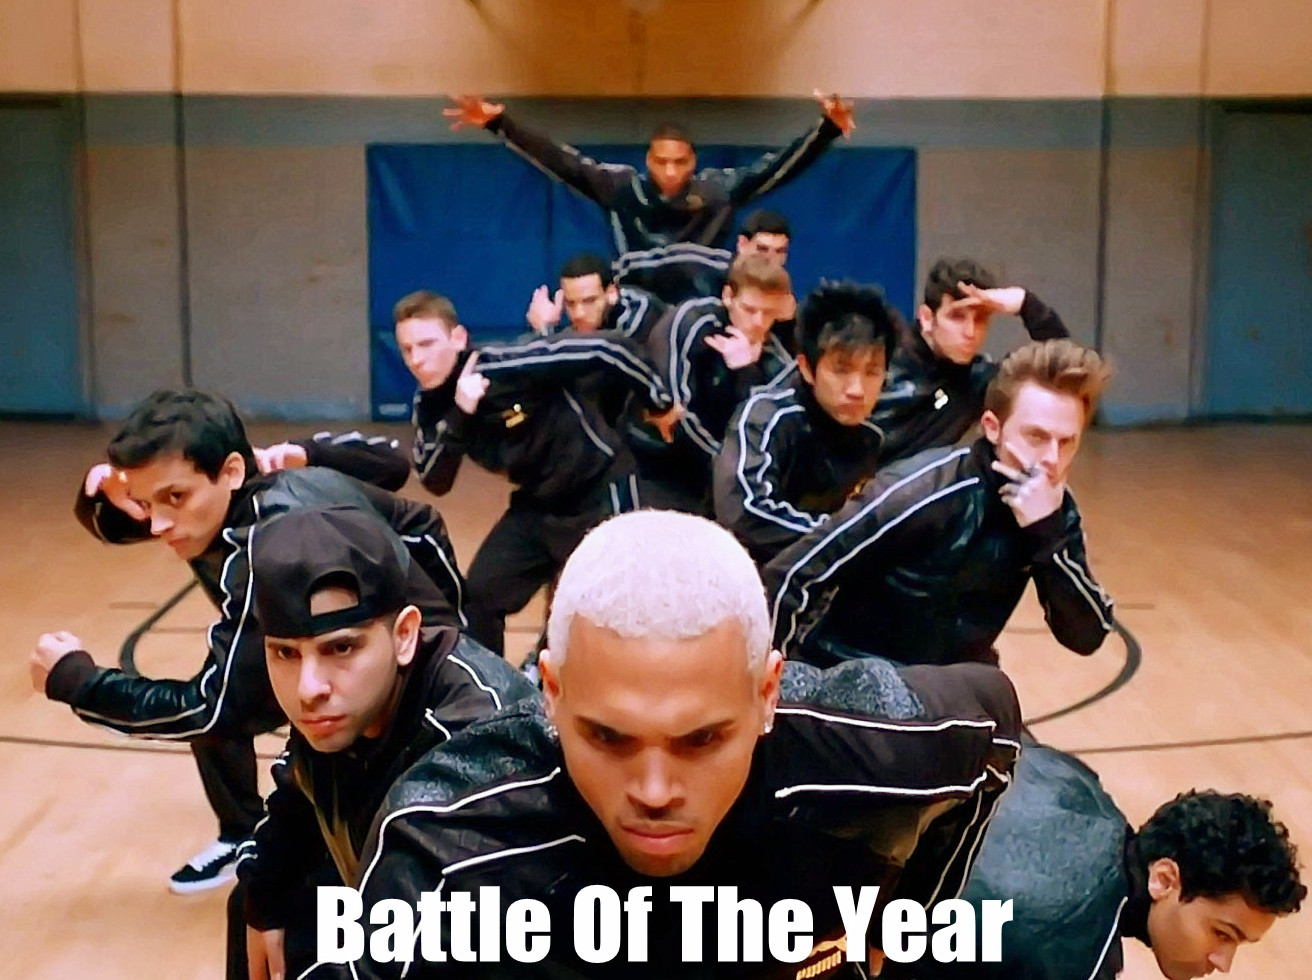 Battle Of The Year Movie Film 2013 - Sinopsis